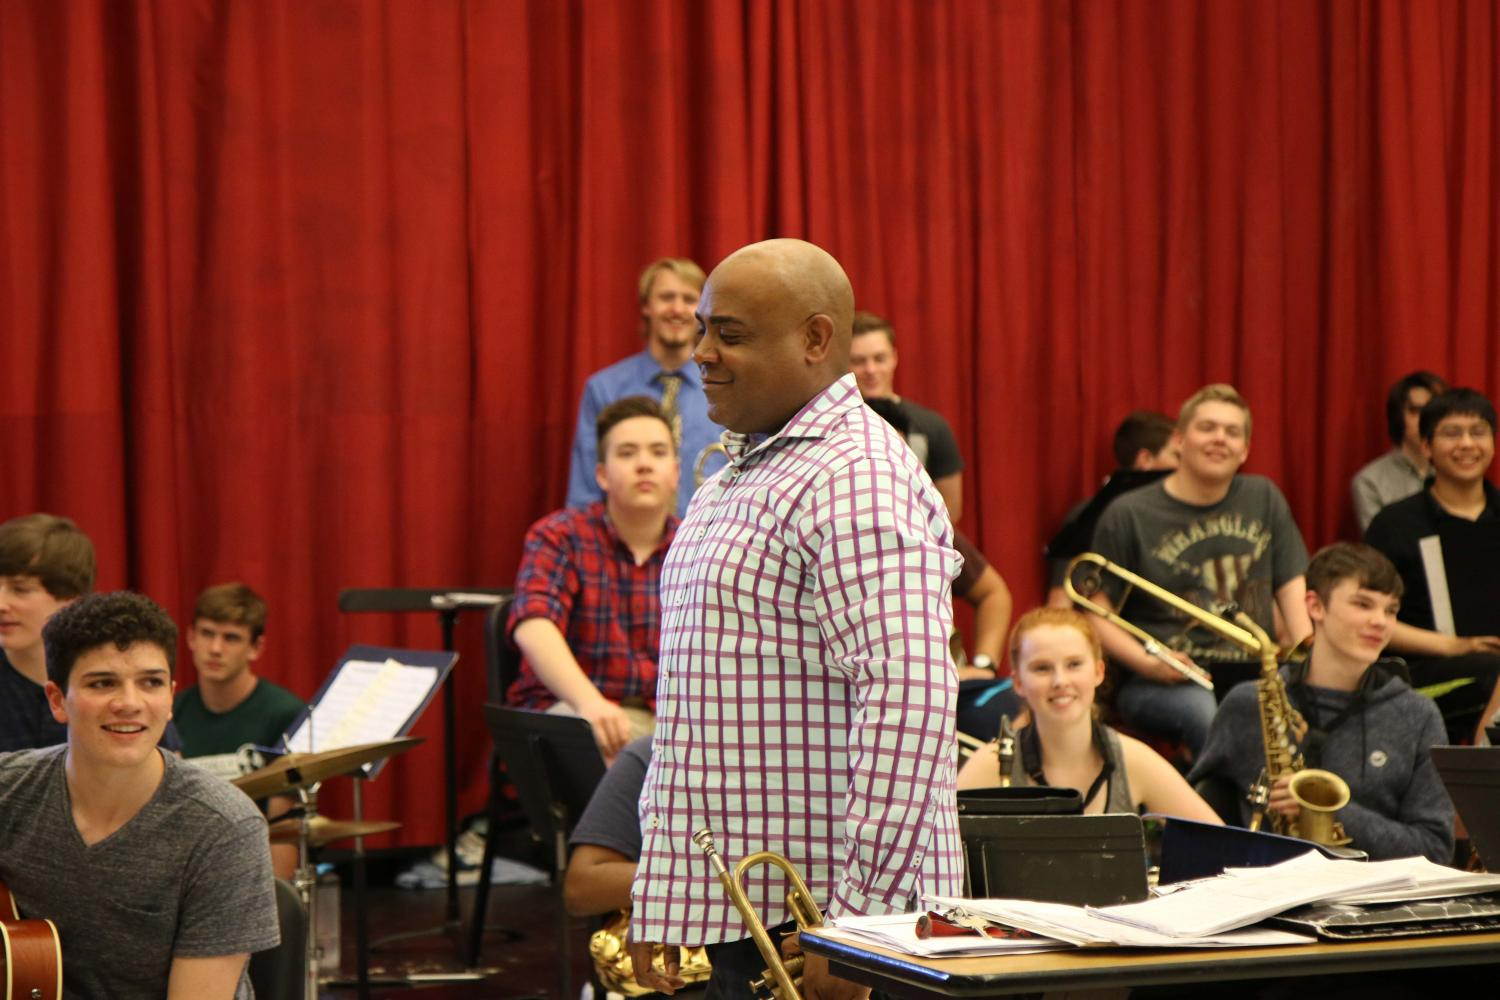 Terell+Stafford+at+the+Jazz+1+rehearsal.